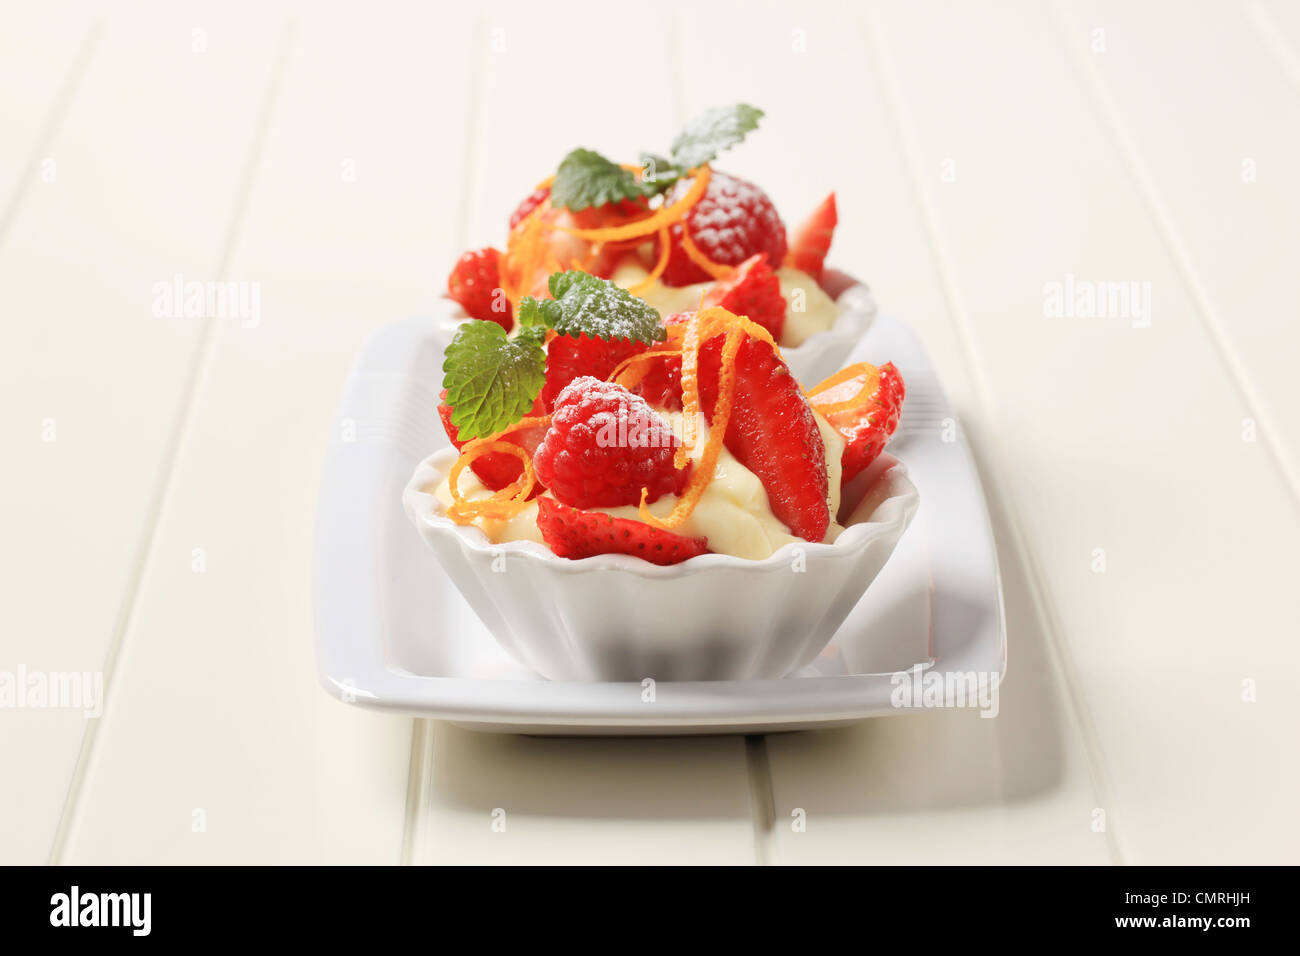 Creamy pudding and fresh fruit in small dessert dishes - Stock Image